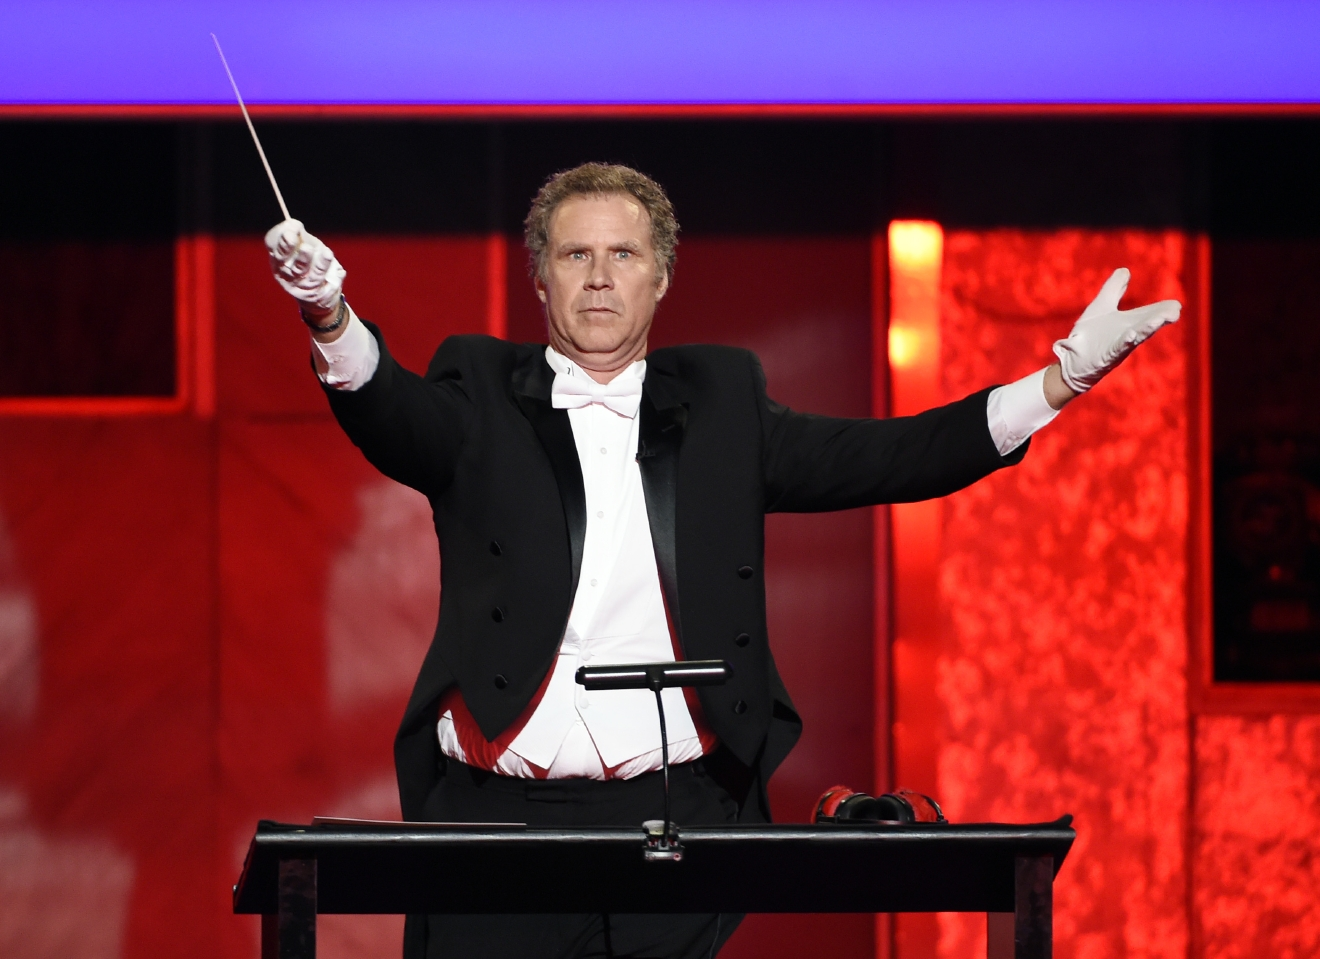 Actor Will Ferrell plays a conductor onstage during the 2016 AFI Life Achievement Award Gala Tribute to John Williams at the Dolby Theatre on Thursday, June 9, 2016, in Los Angeles. (Photo by Chris Pizzello/Invision/AP)